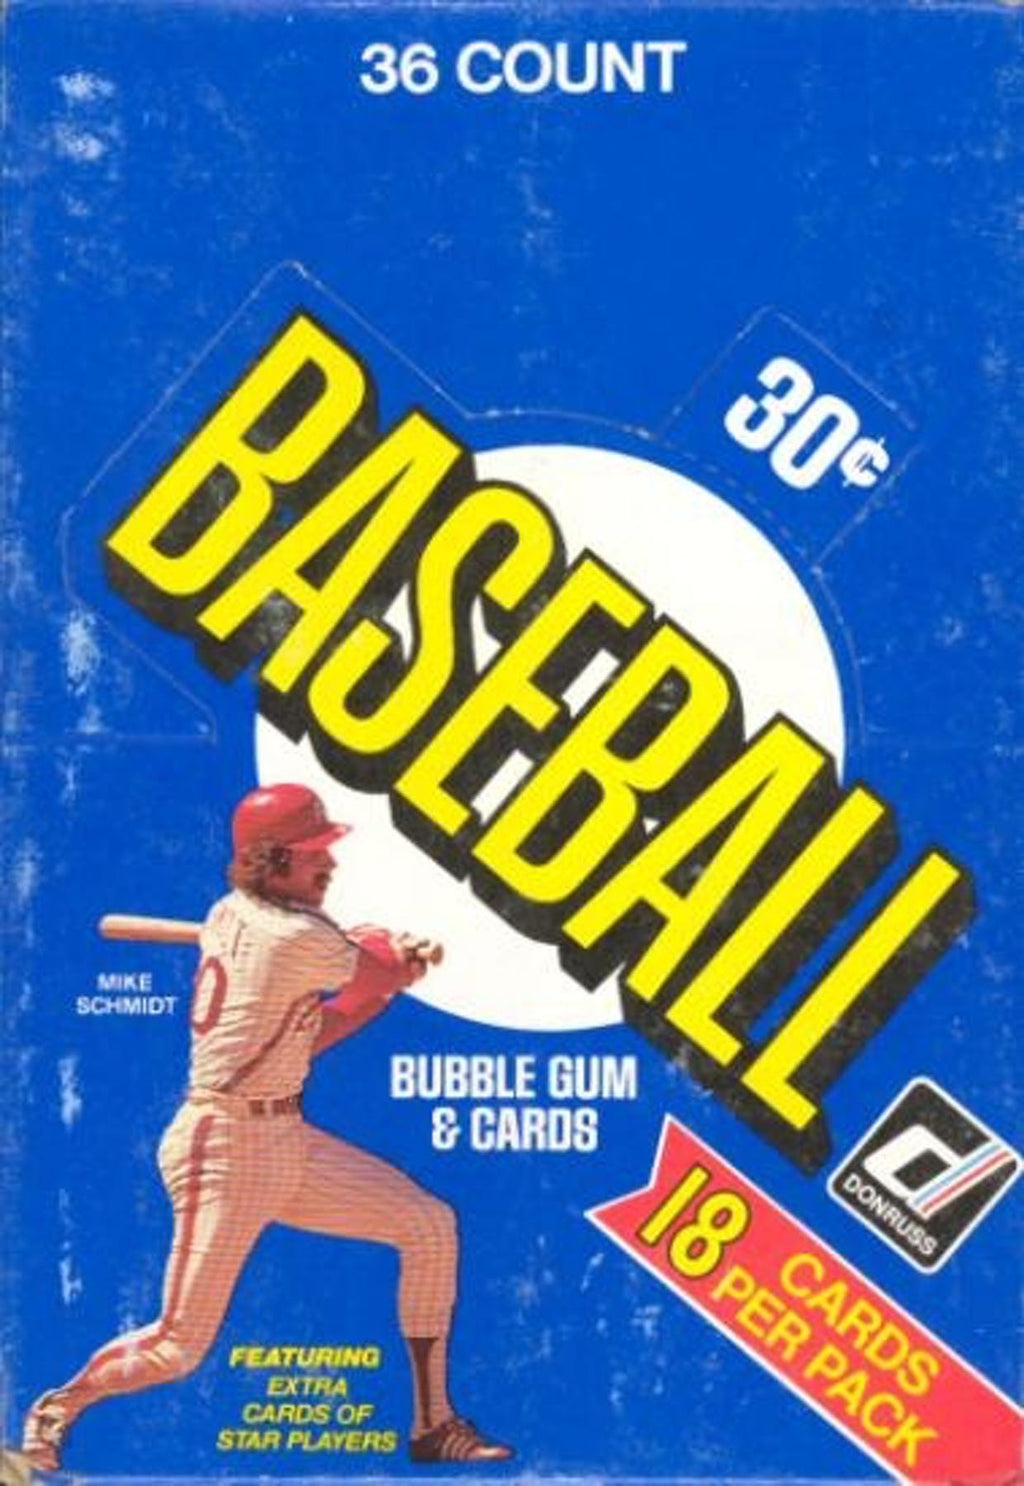 OLD SKOOL WAX BUST: 1981 Donruss Baseball Wax Box ID 81DONRUSS101